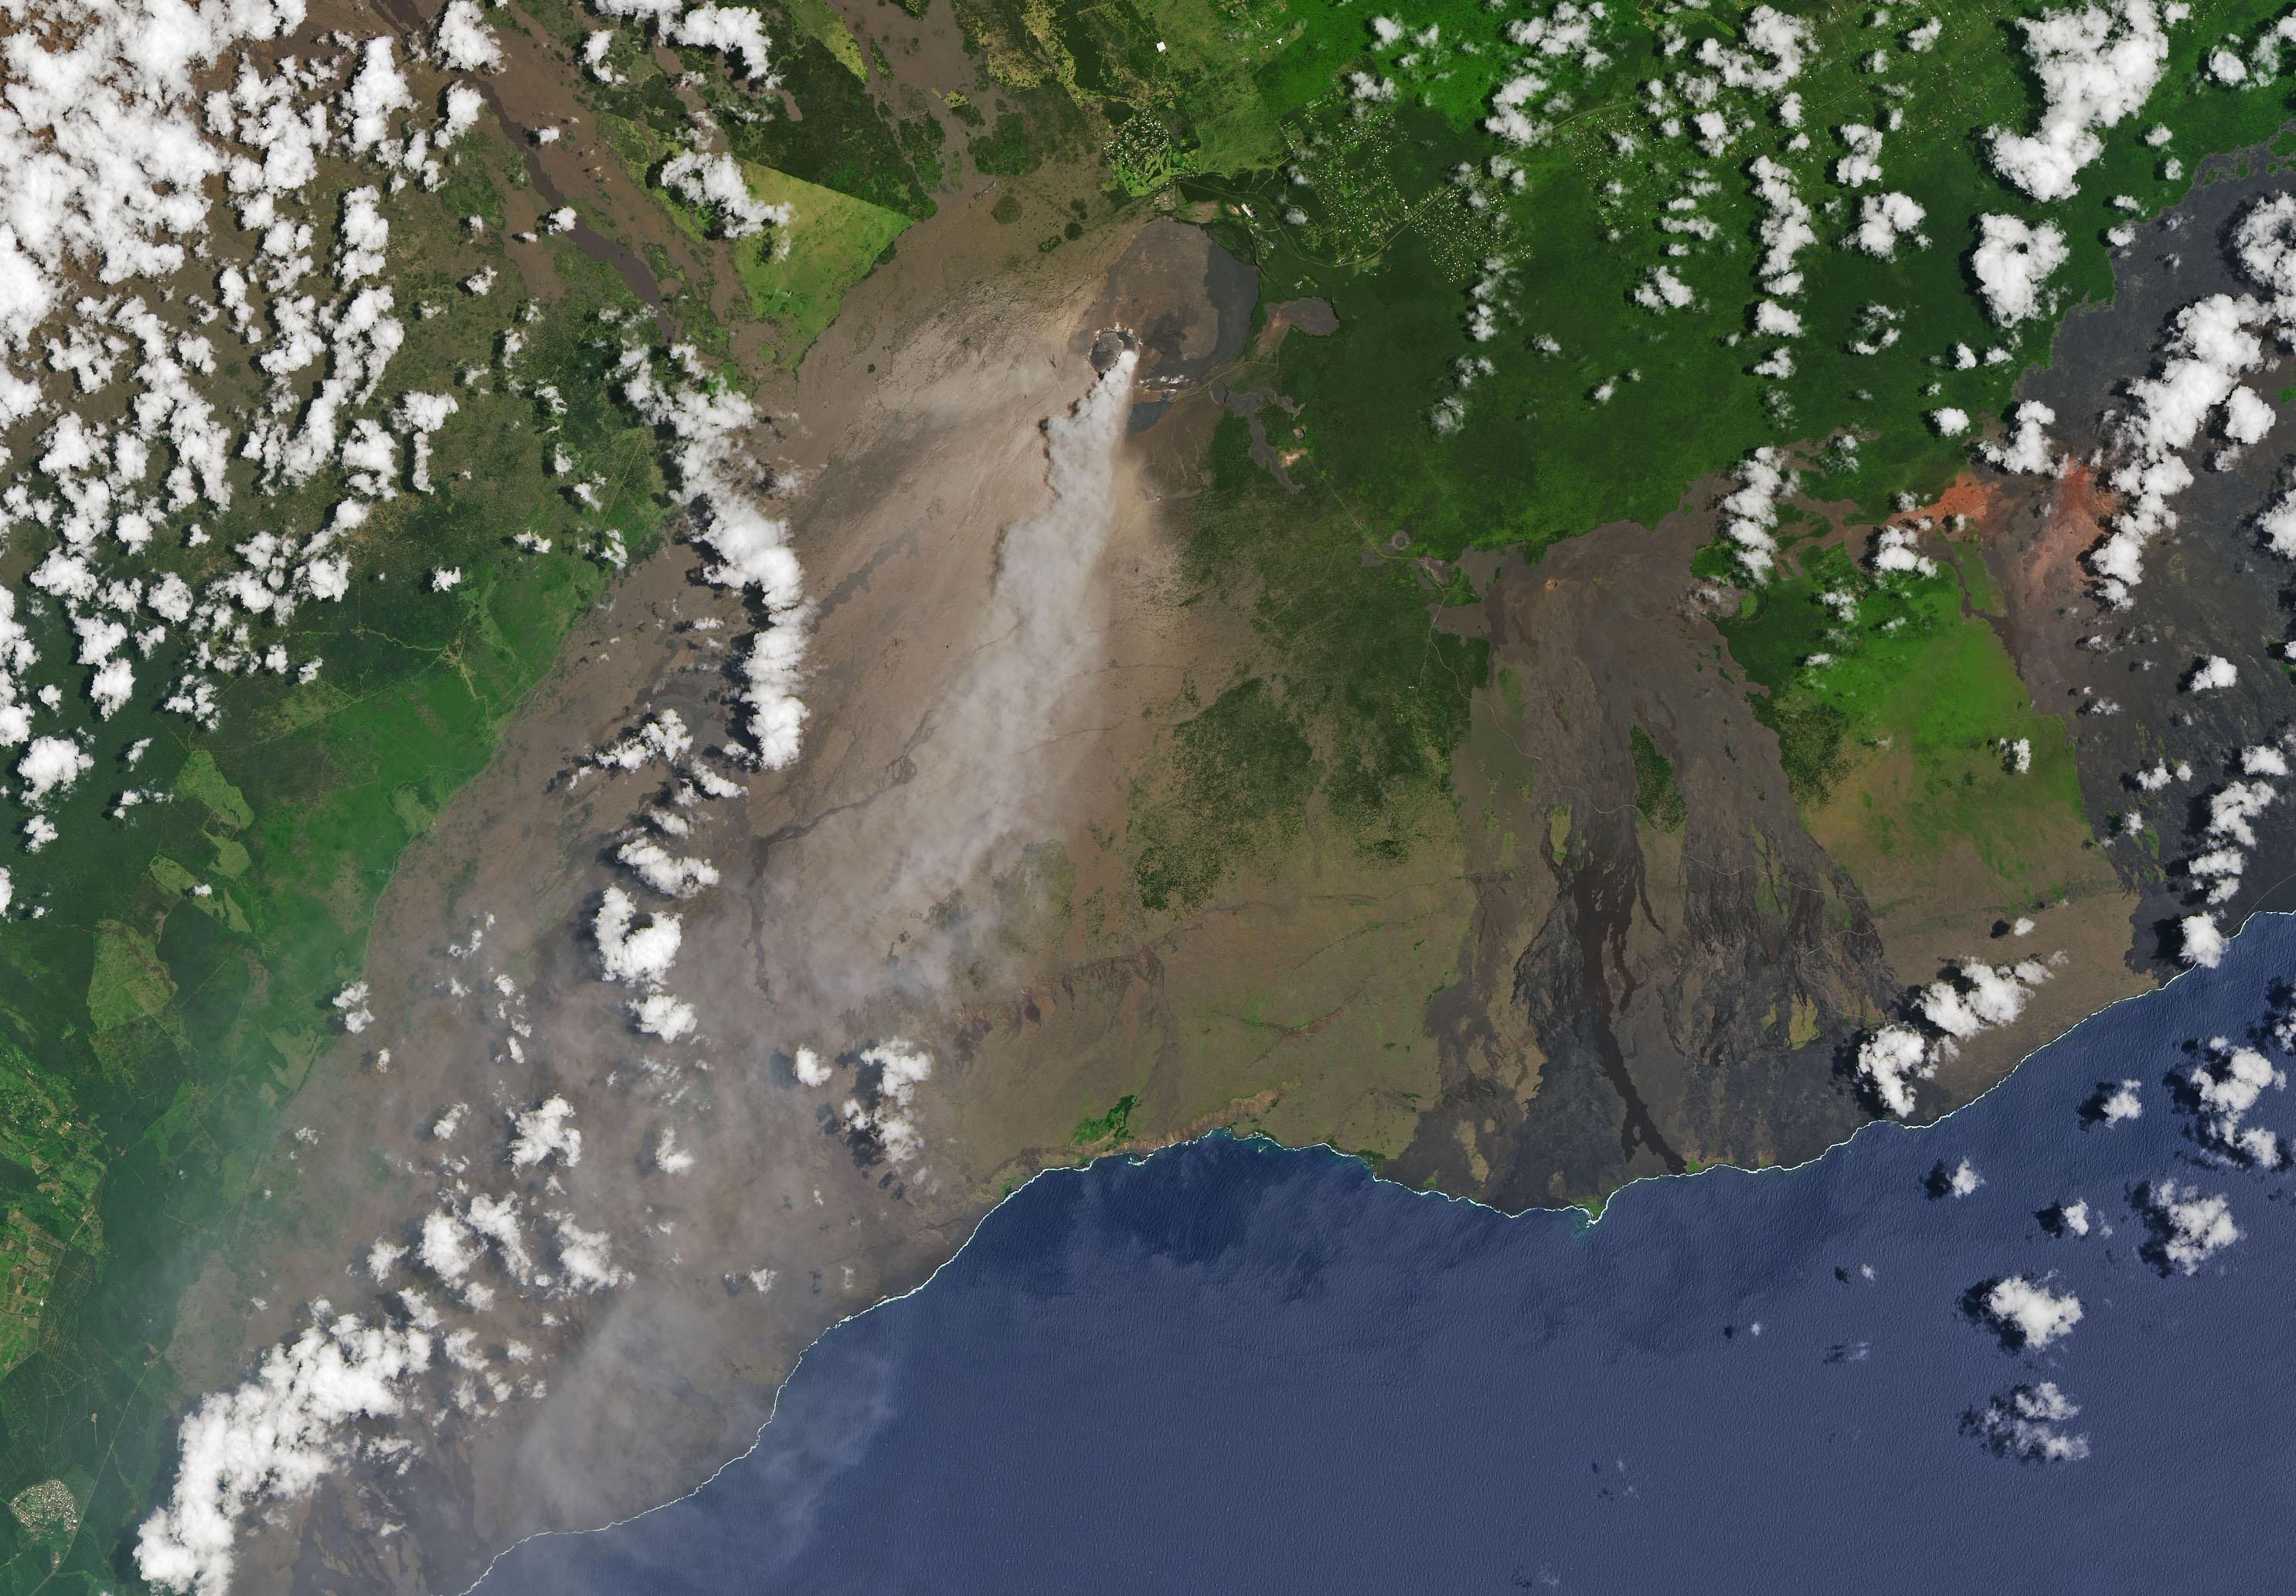 Today's Image of the Day comes from the NASA Earth Observatory and features a look at the eruption of the Kilauea volcano as seen from space.